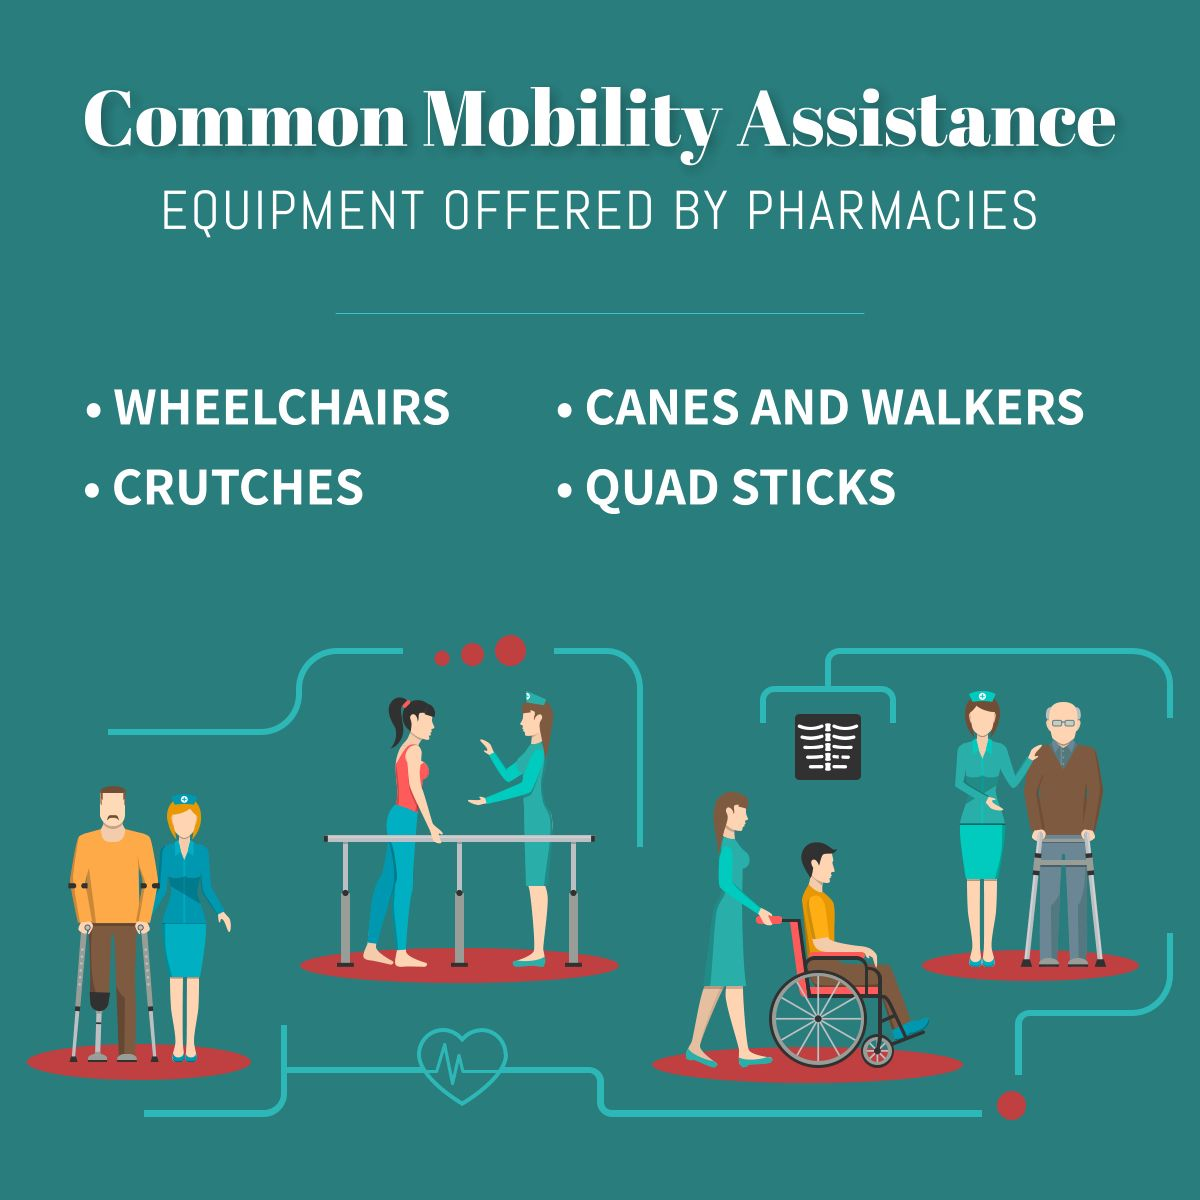 Common Mobility Assistance Equipment Offered by Pharmacies